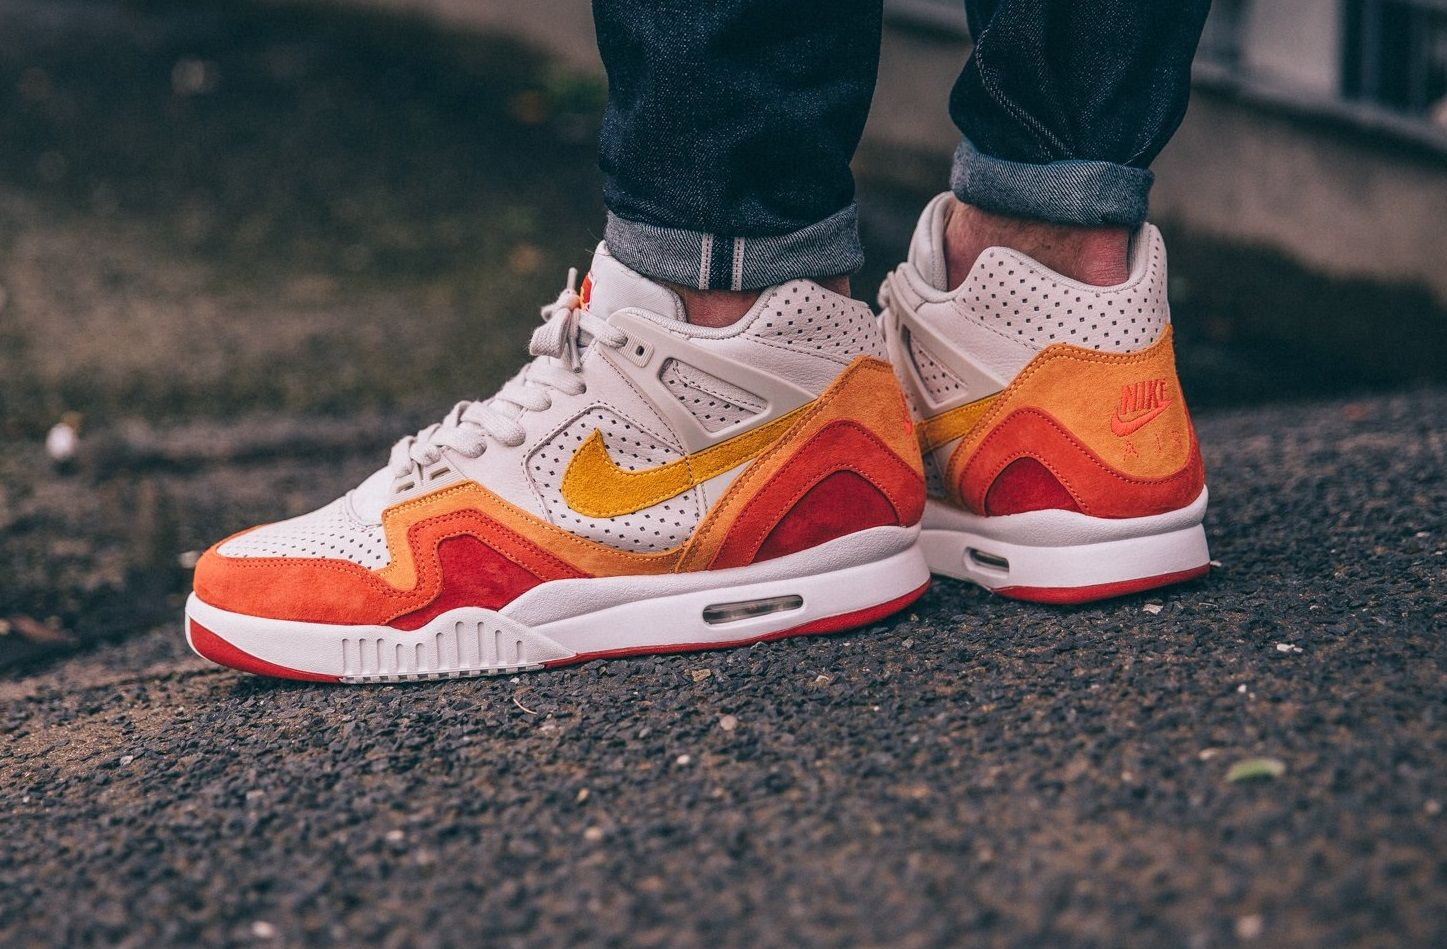 Nike Air Tech Challenge II QS Light Bone/Laser Orange | concrete.nl